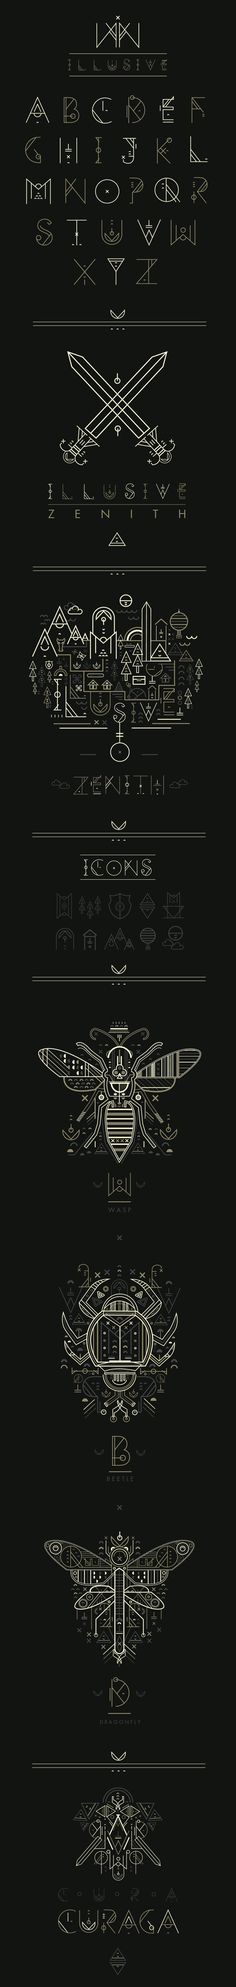 Illusive by Petros Afshar, via Behance yessssssssssssss. My heart hurts. Crafty!